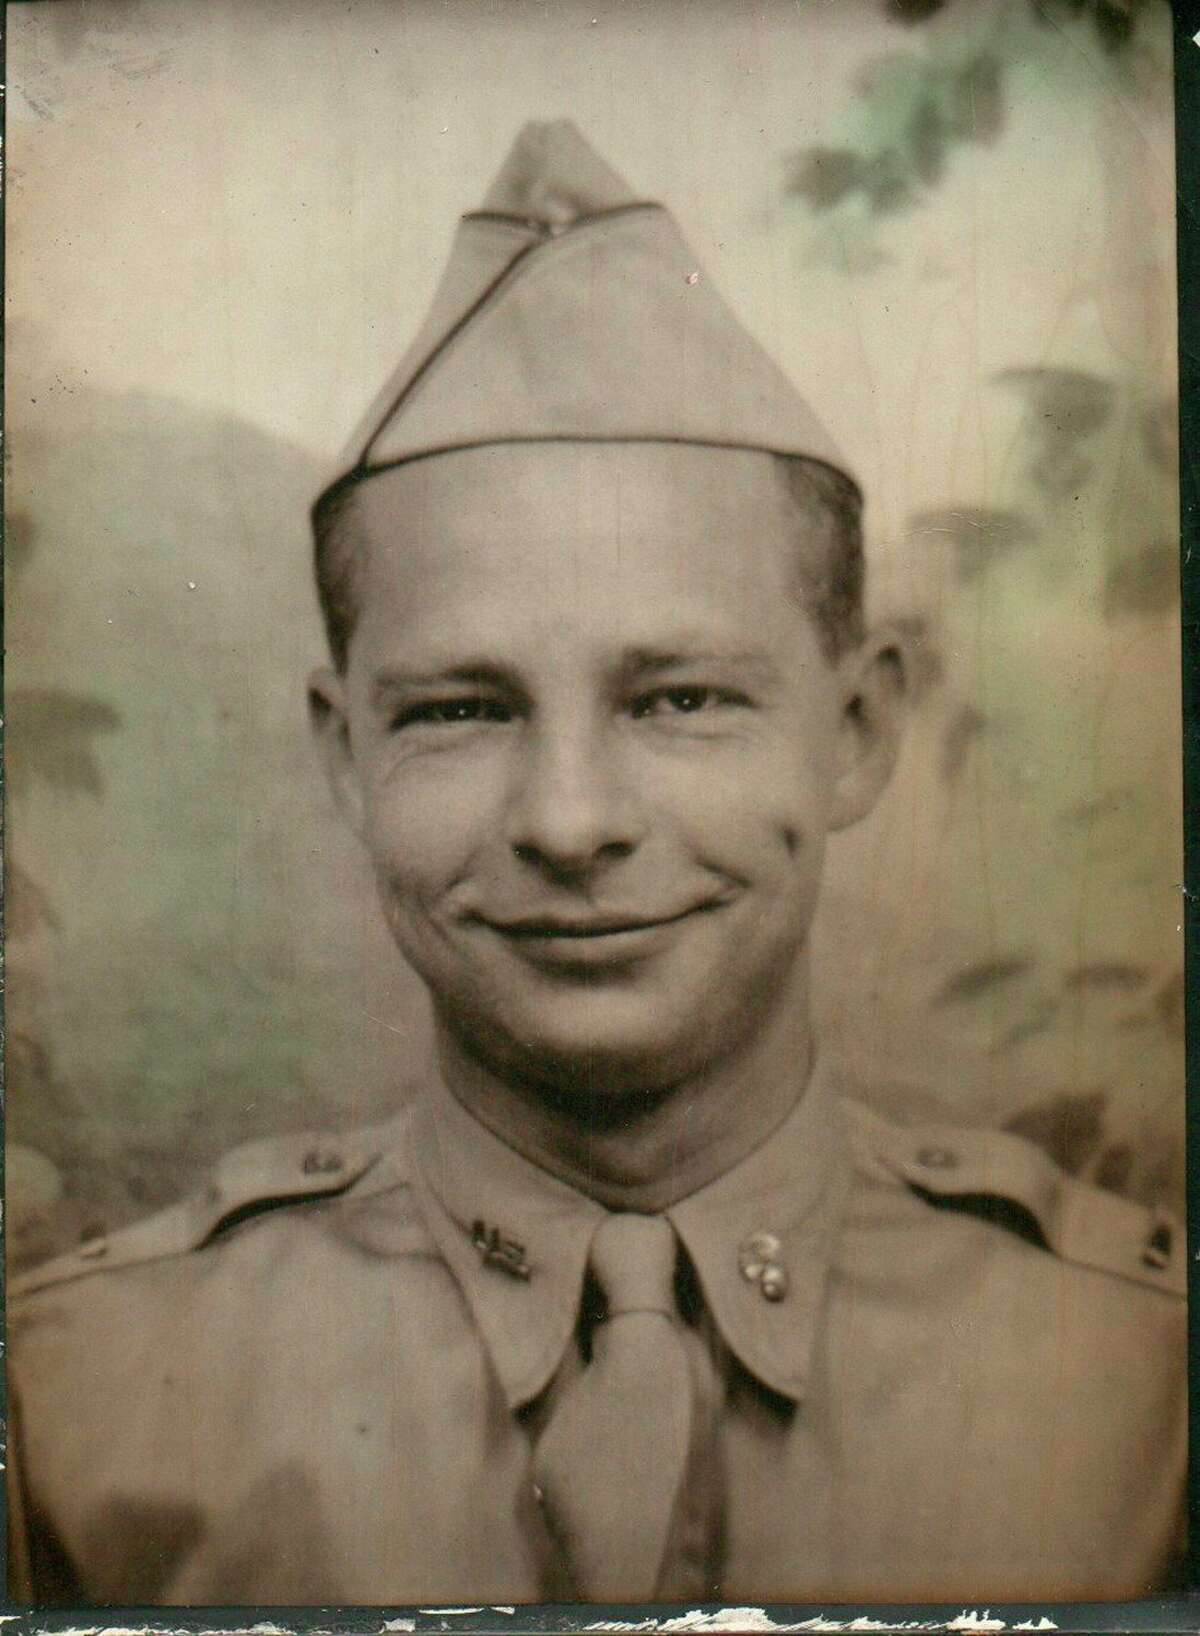 Pictured is Second Lieutenant Carl A. Gerstacker, 1941. (Photo Provided)